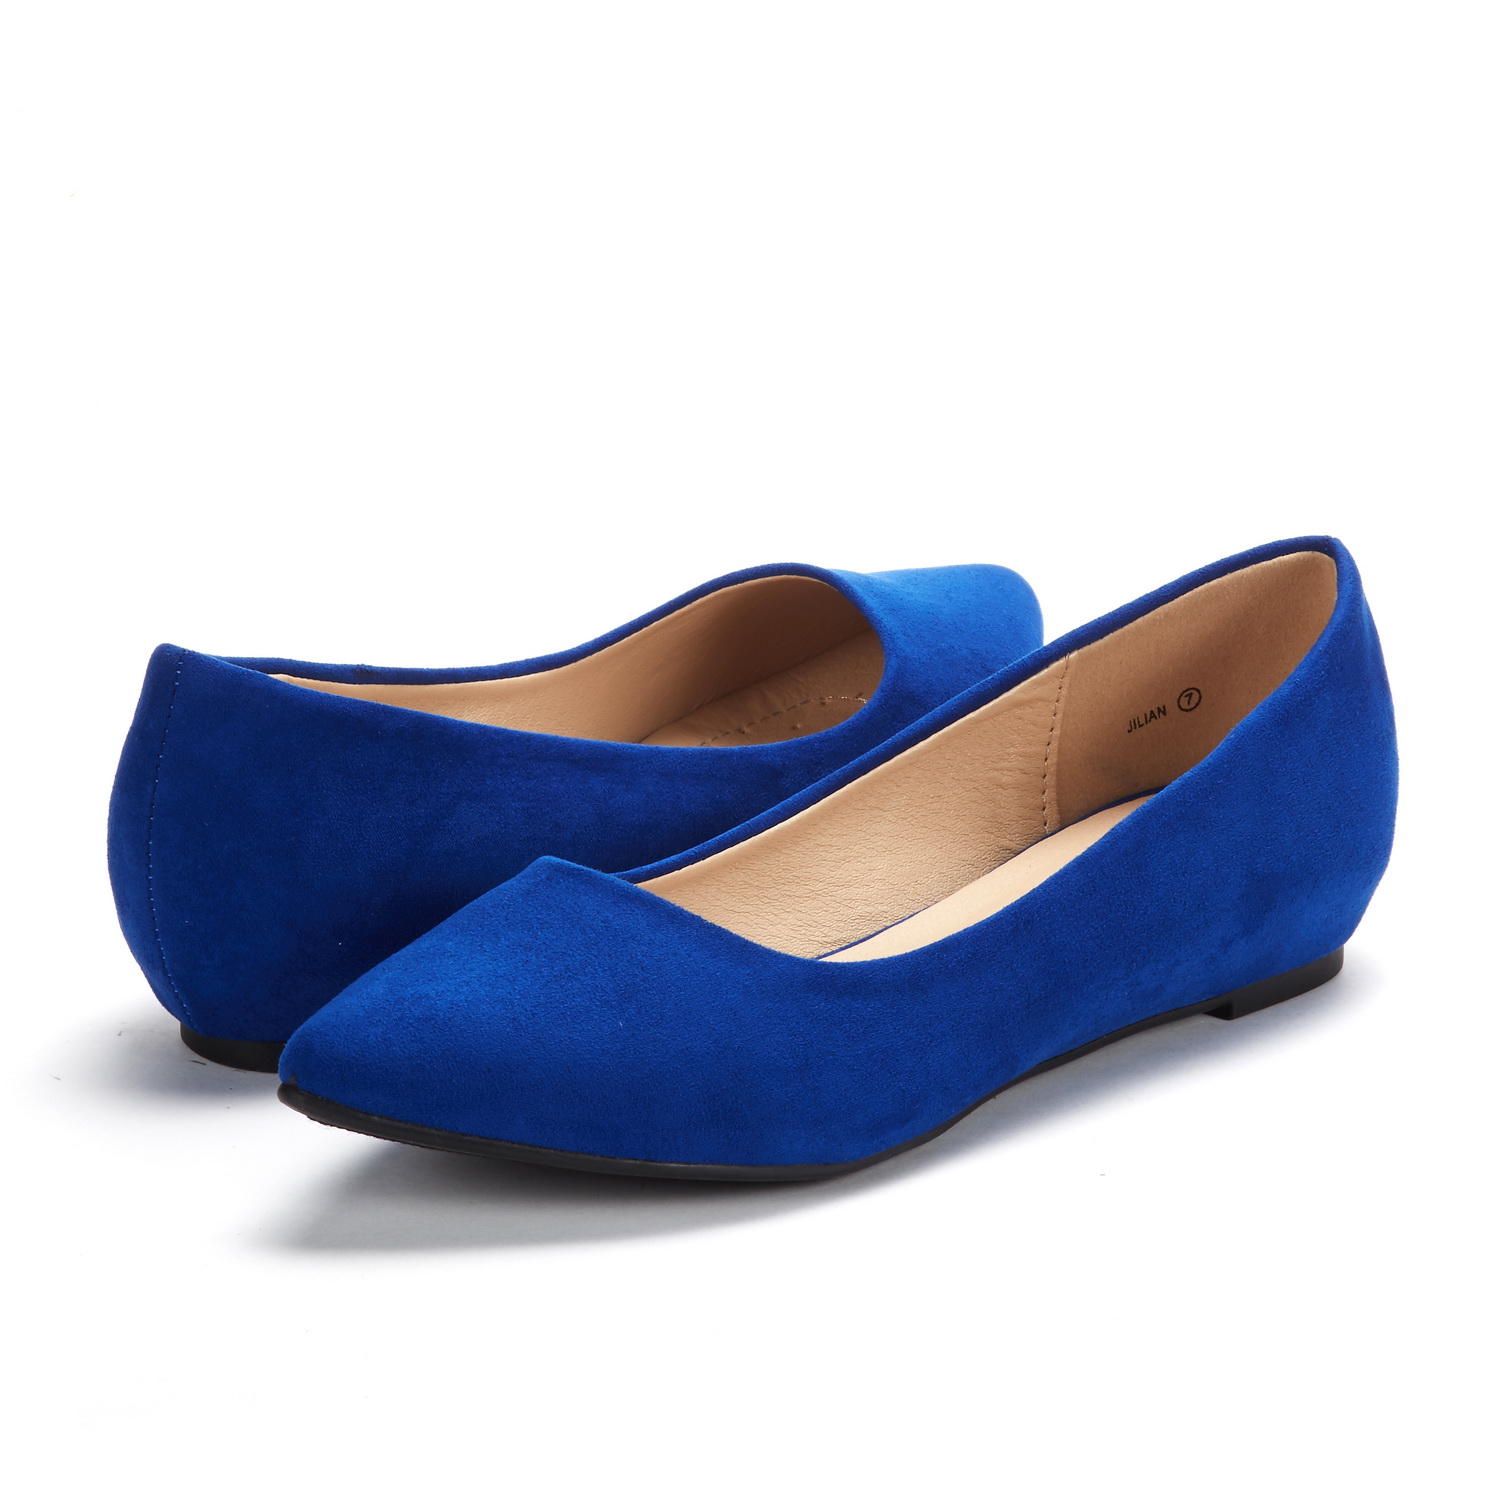 DREAM-PAIRS-Women-Low-Wedge-Flats-Ladies-Pointed-Toe-Slip-On-Comfort-Flat-Shoes thumbnail 15